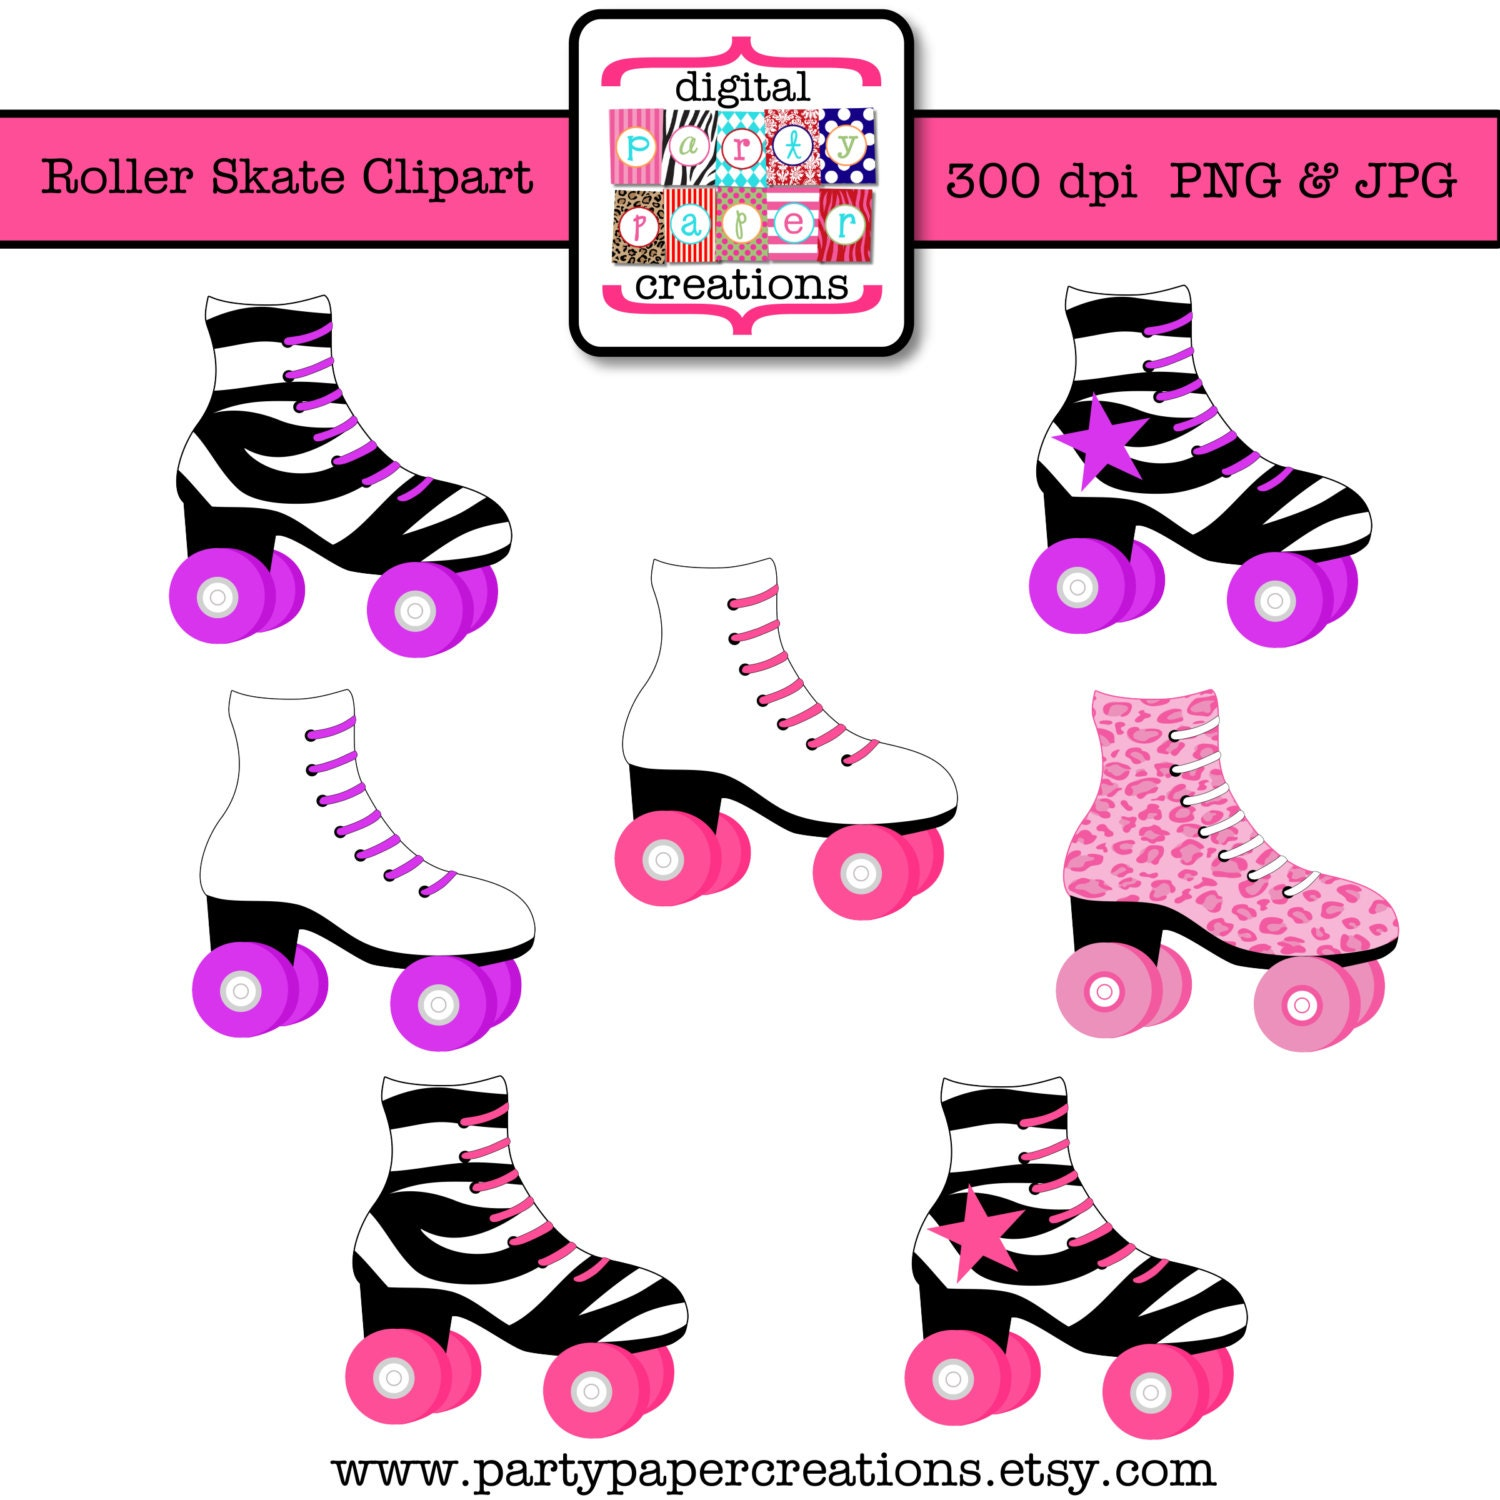 Roller Skate Clipart Skating Party Clipart Leopard Print